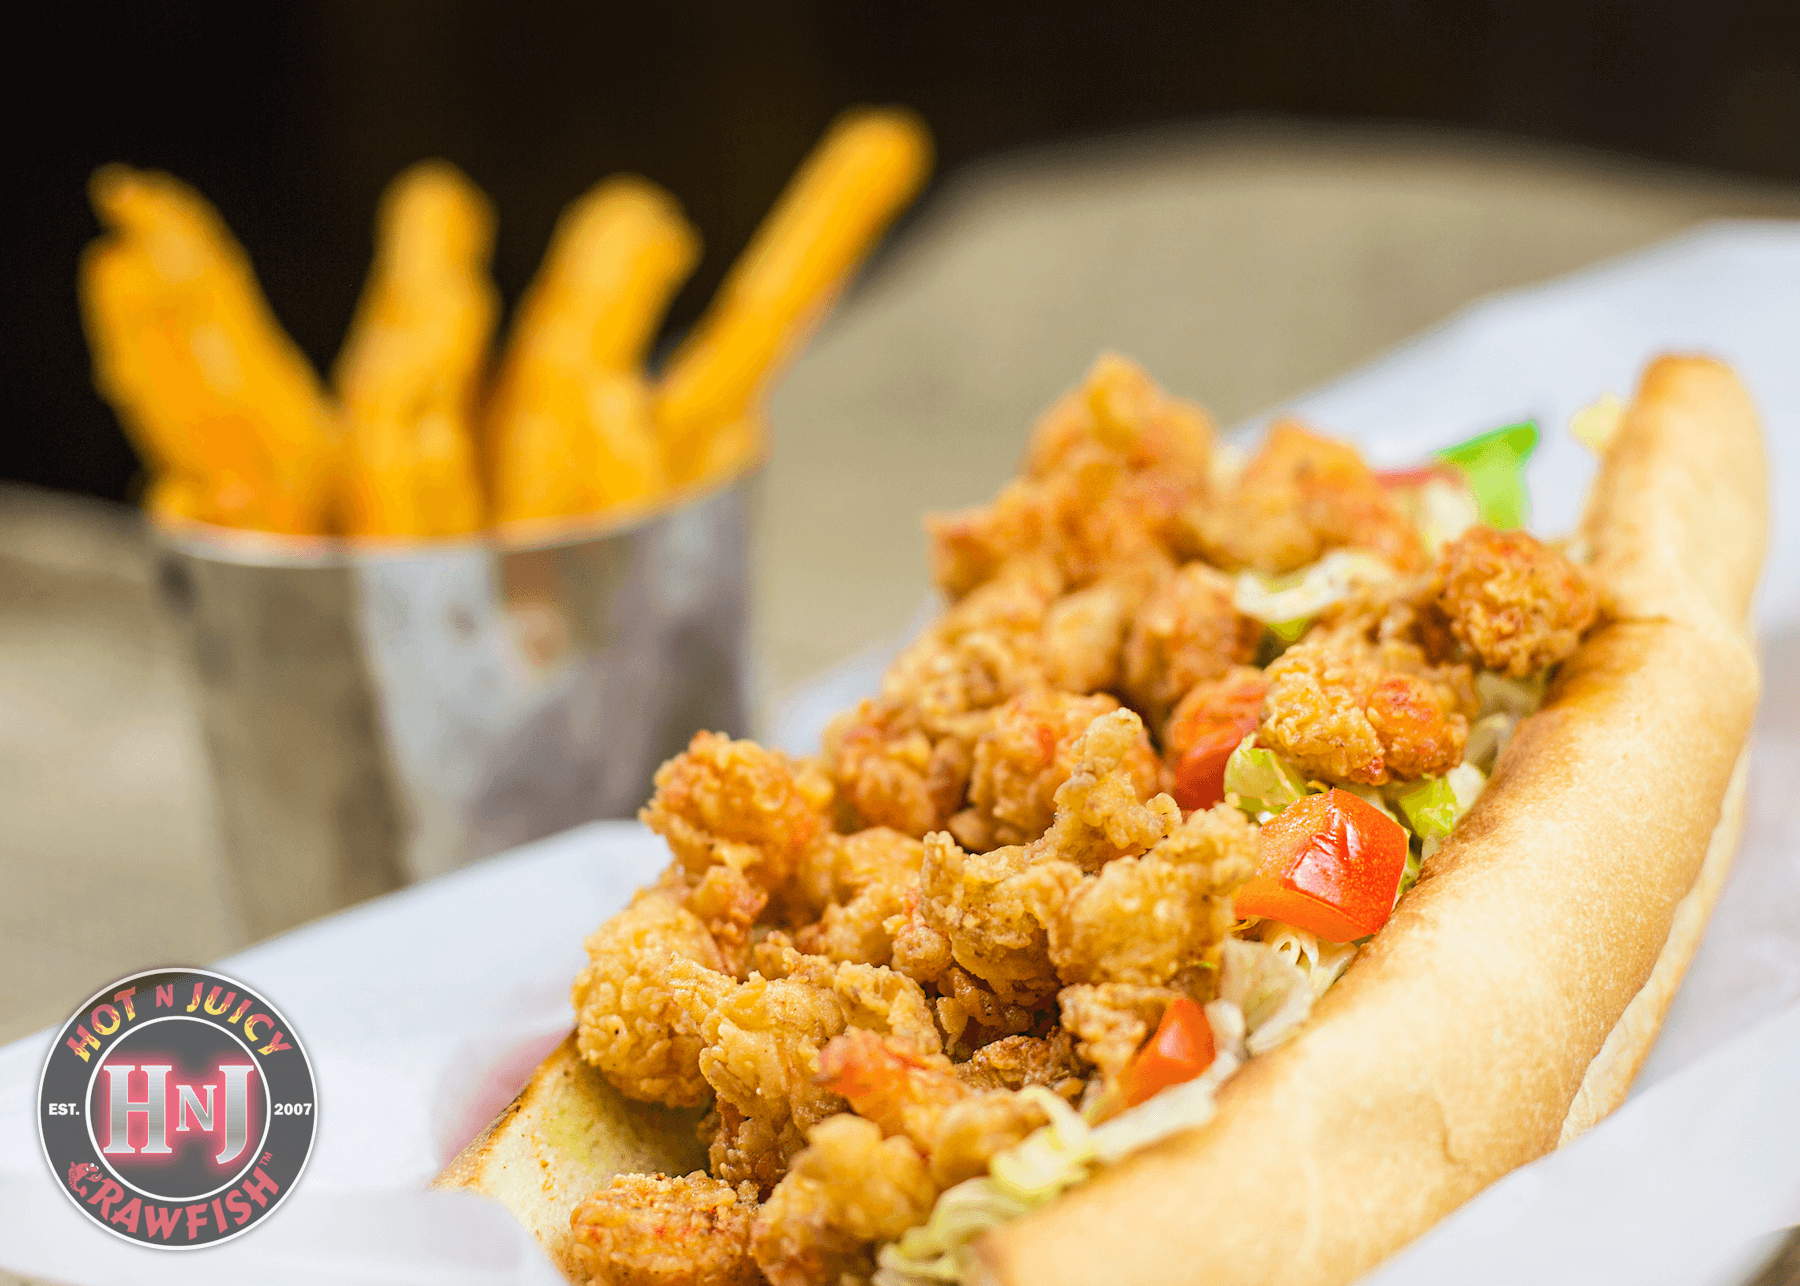 Crawfish Po' Boy